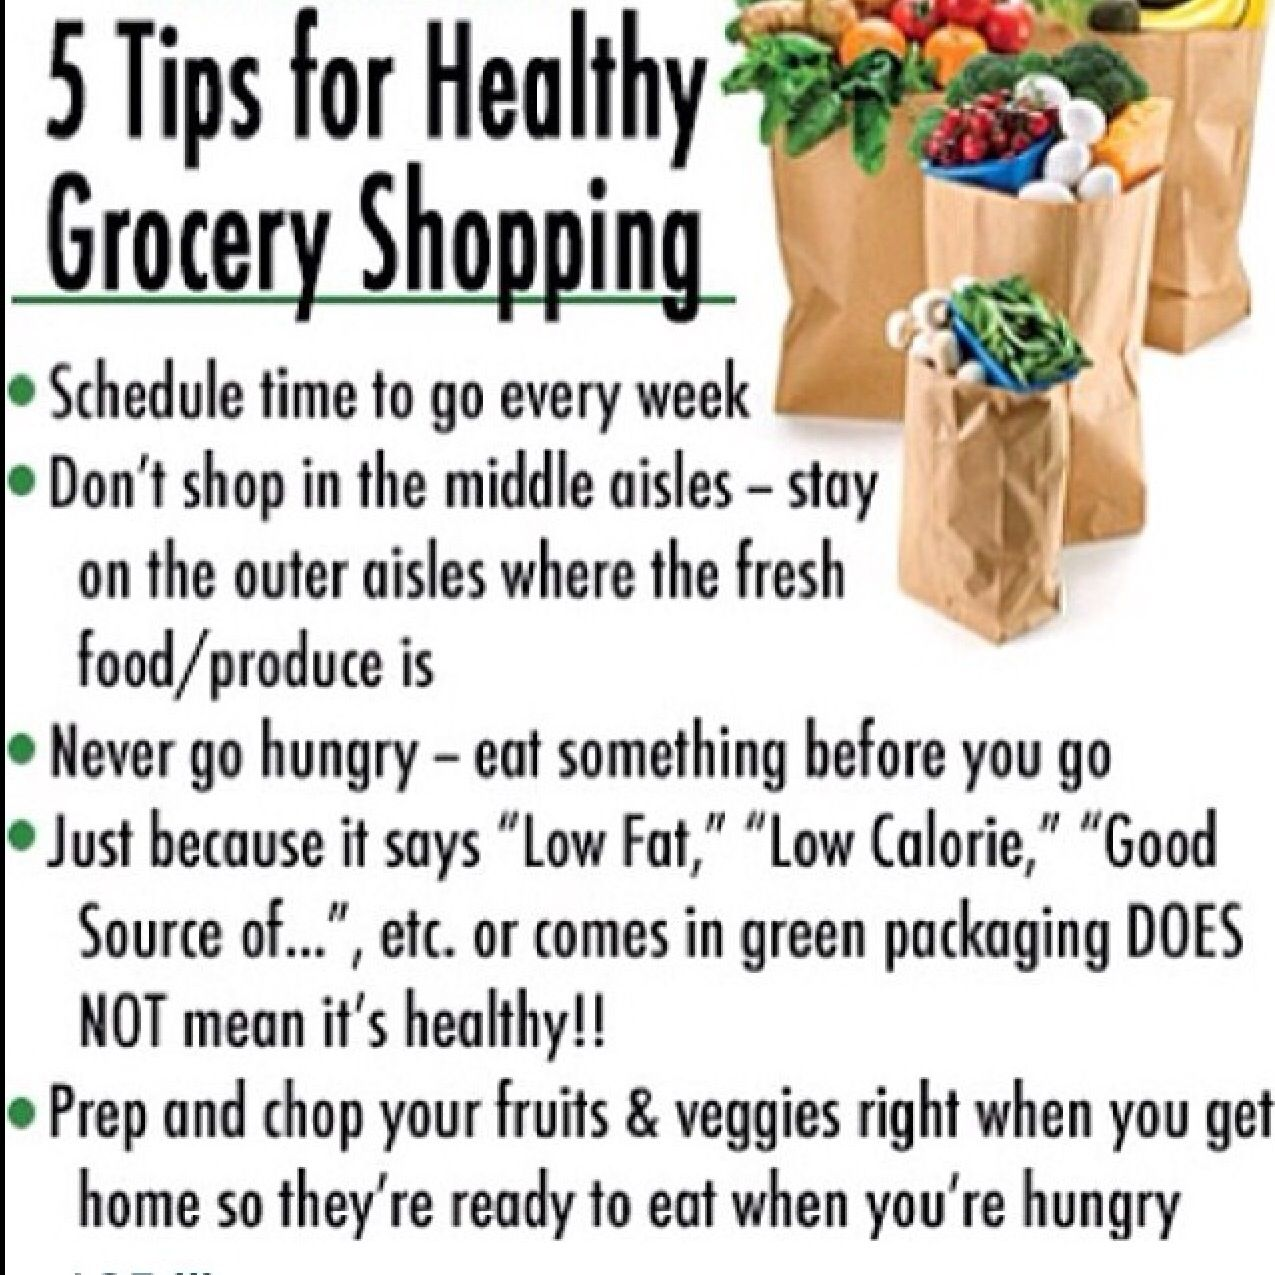 Tips for healthy grocery shopping